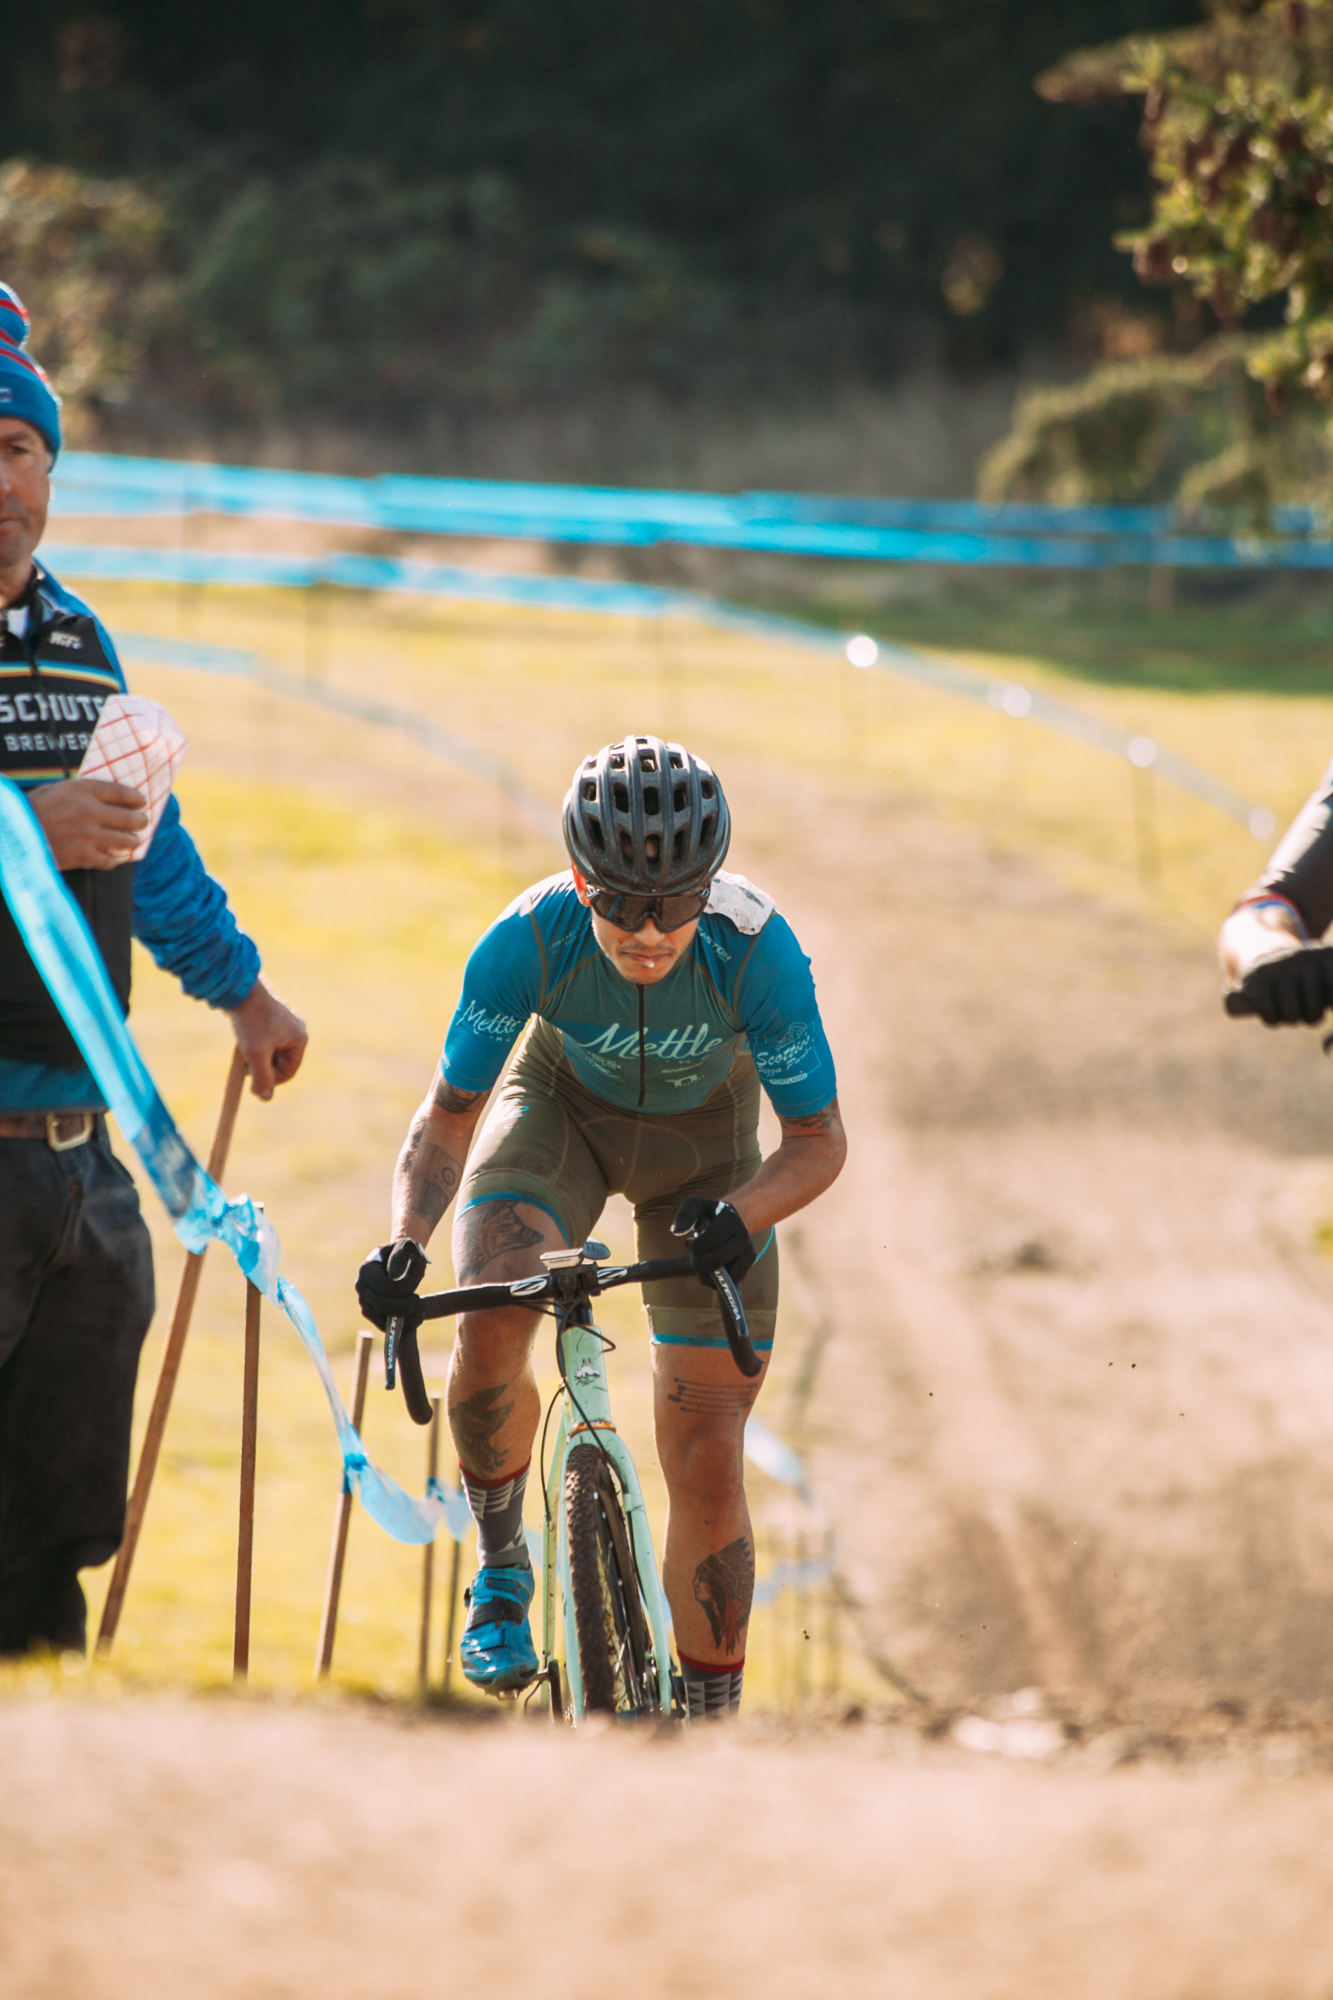 Cyclocross18_CCCX_RainierHS-196-mettlecycling.jpg